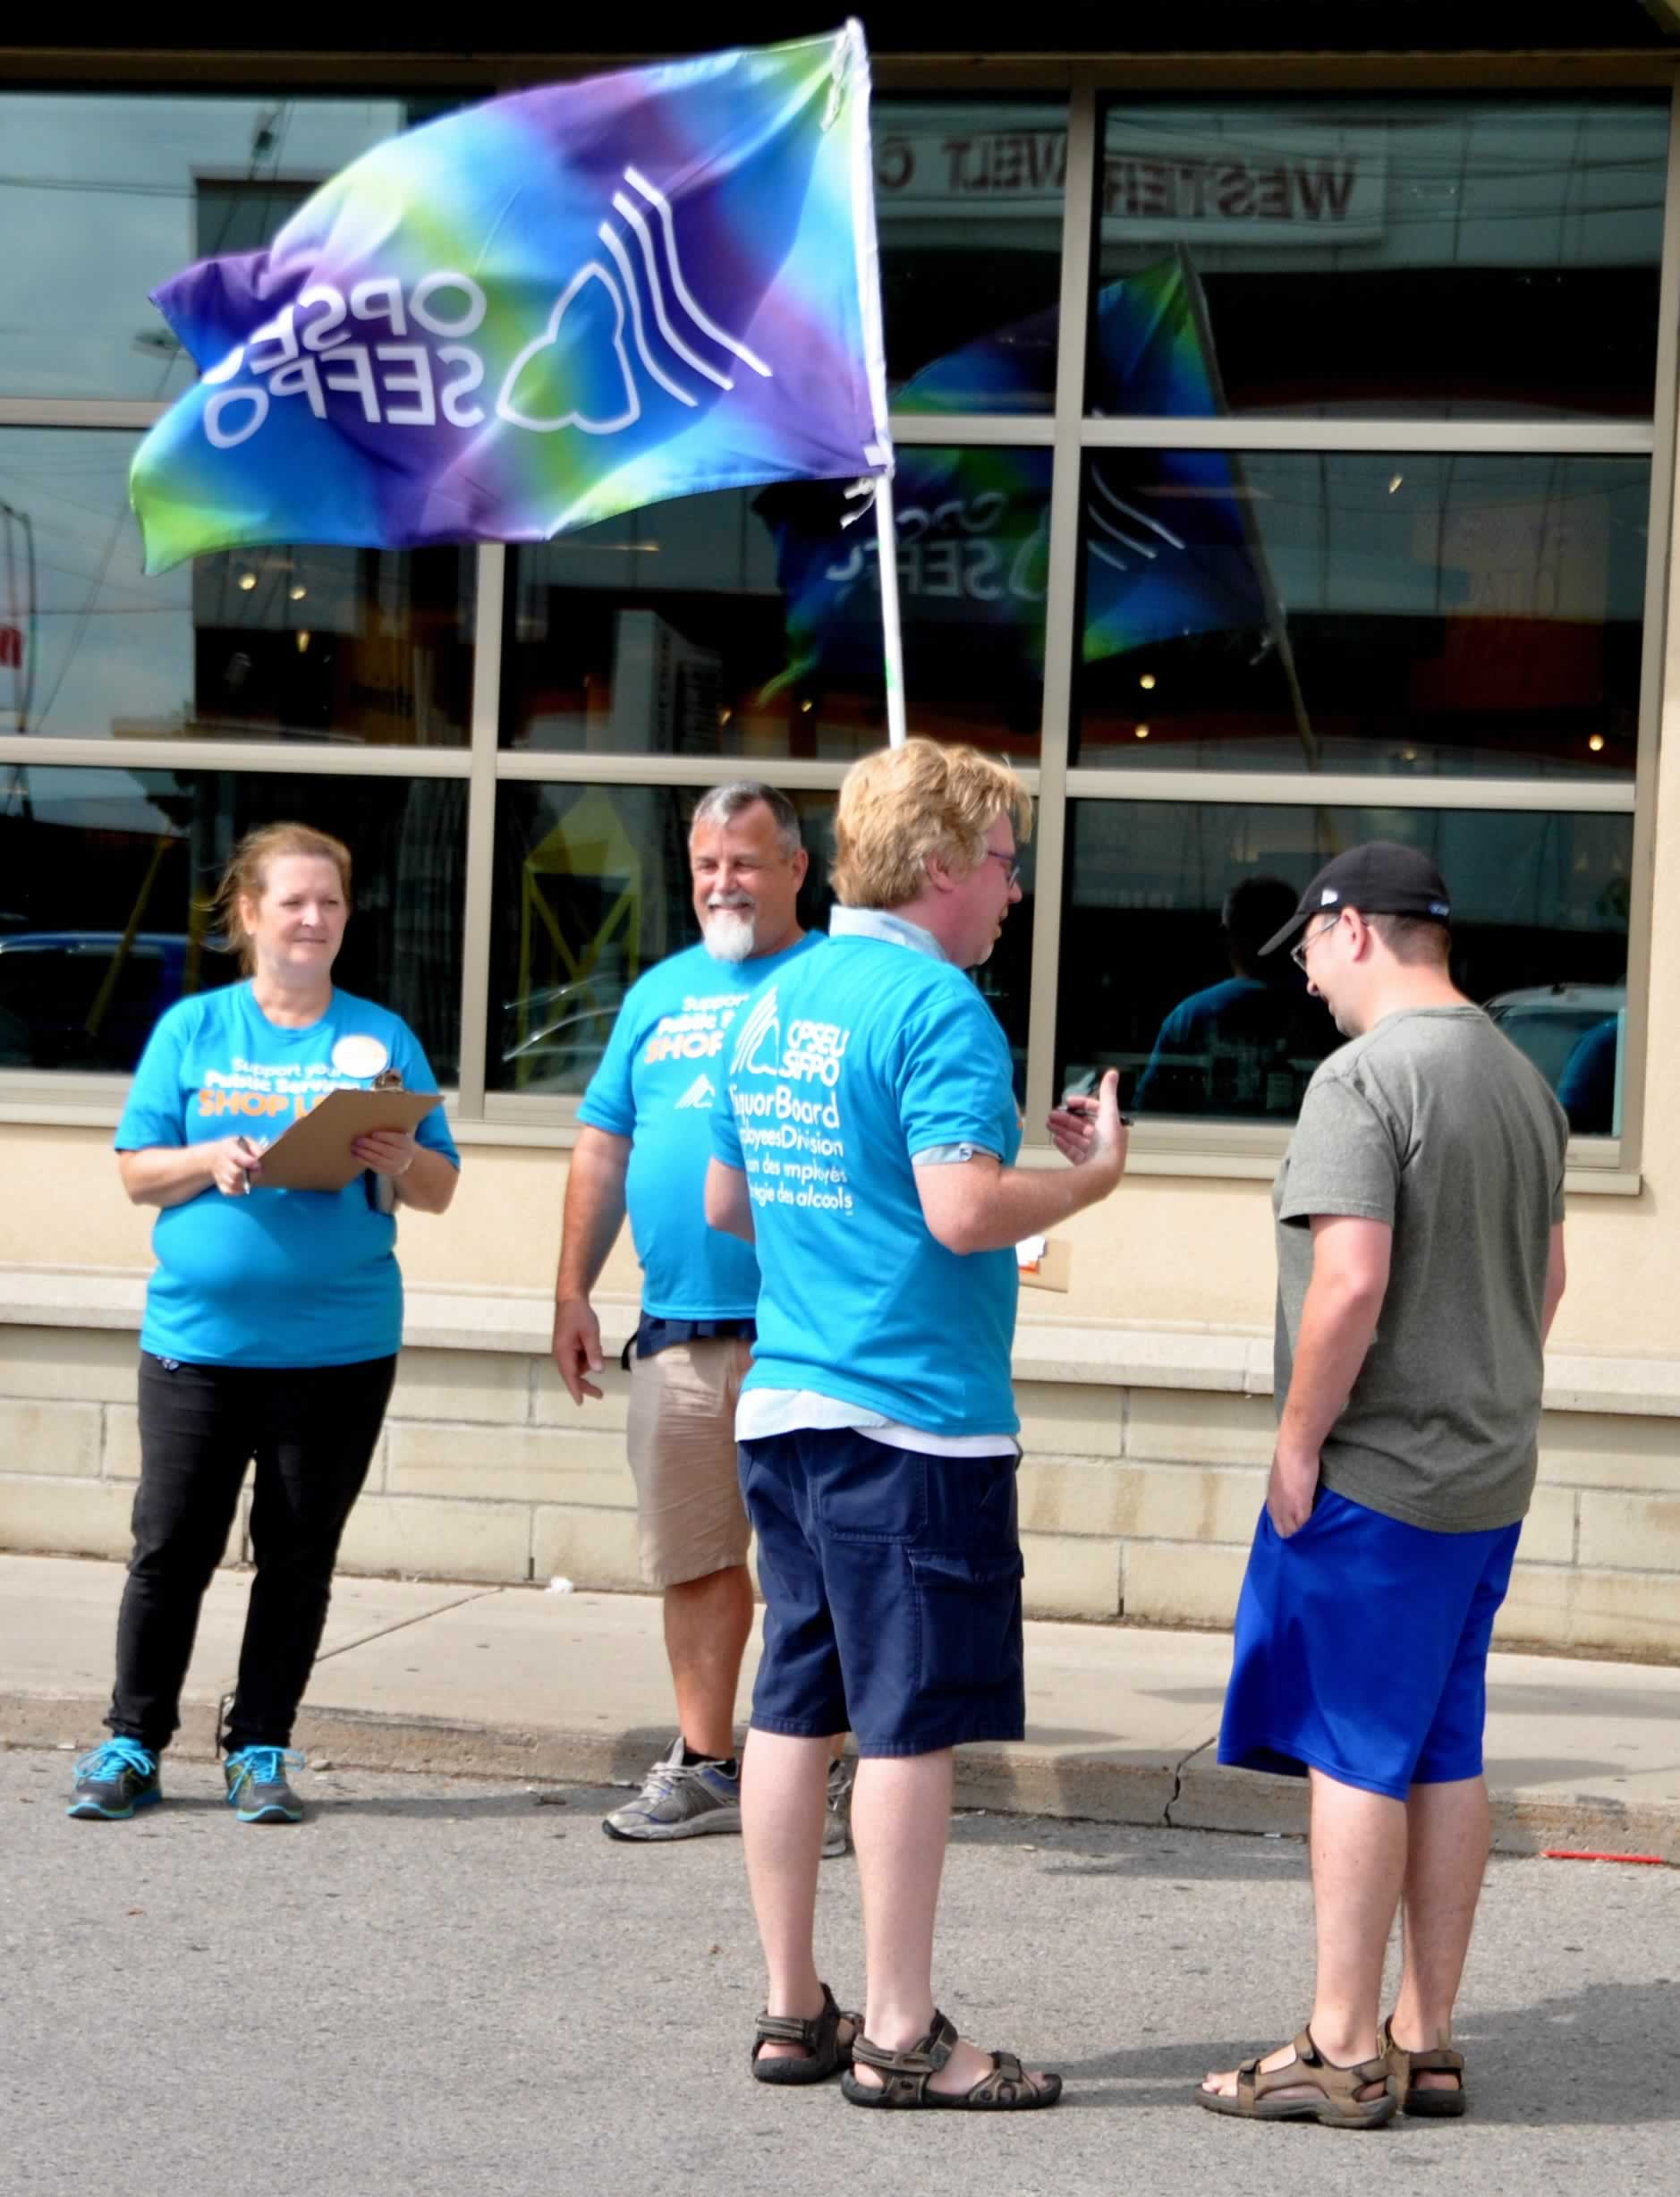 OPSEU members in blue shirts holding flags and clipboards ask a passer-by to sign Shop LCBO cards.signing